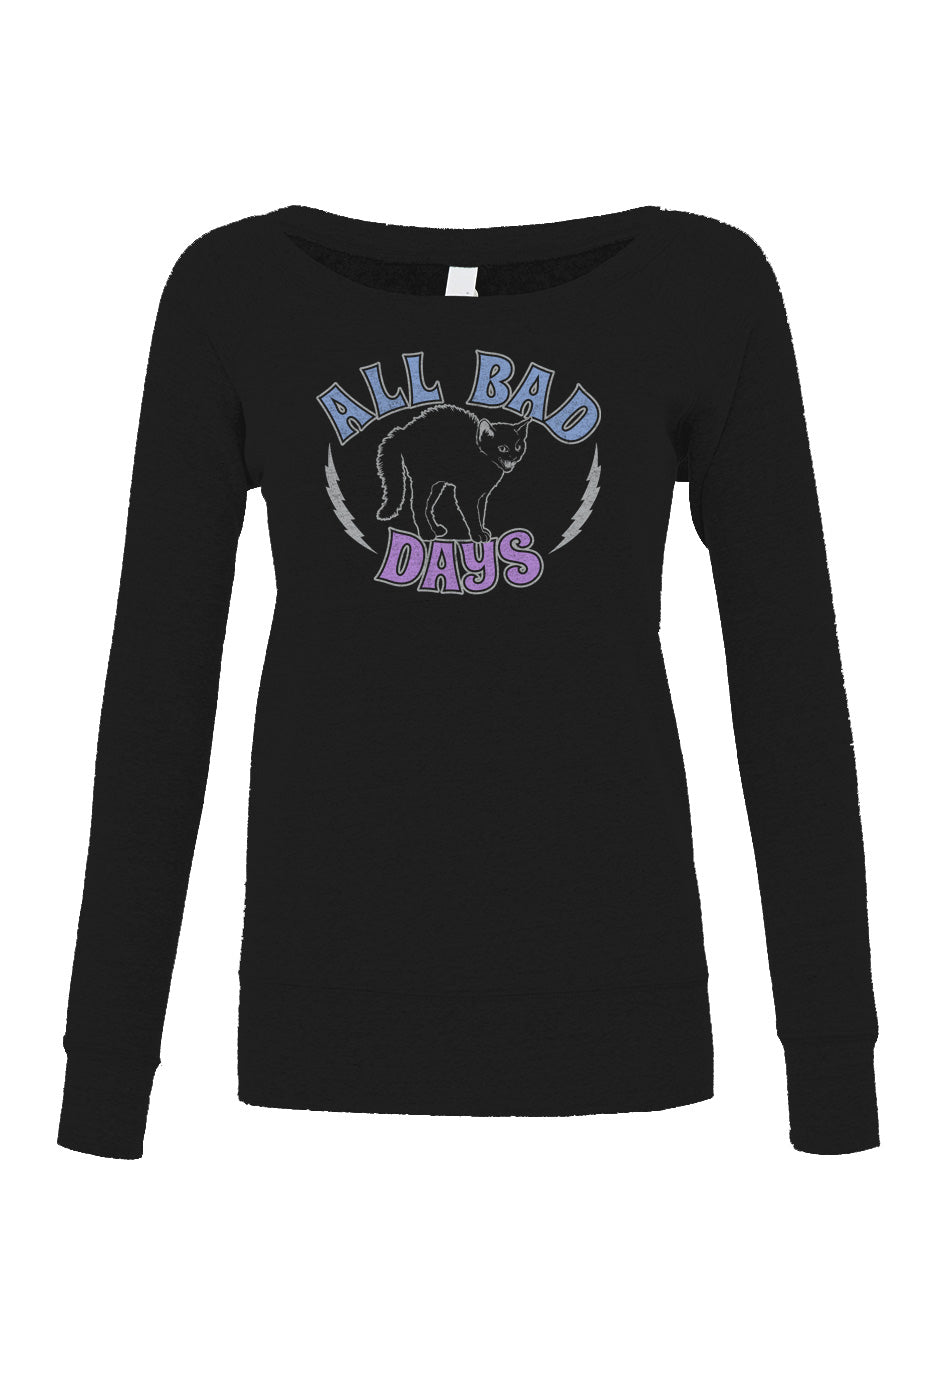 Women's All Bad Days Scoop Neck Fleece